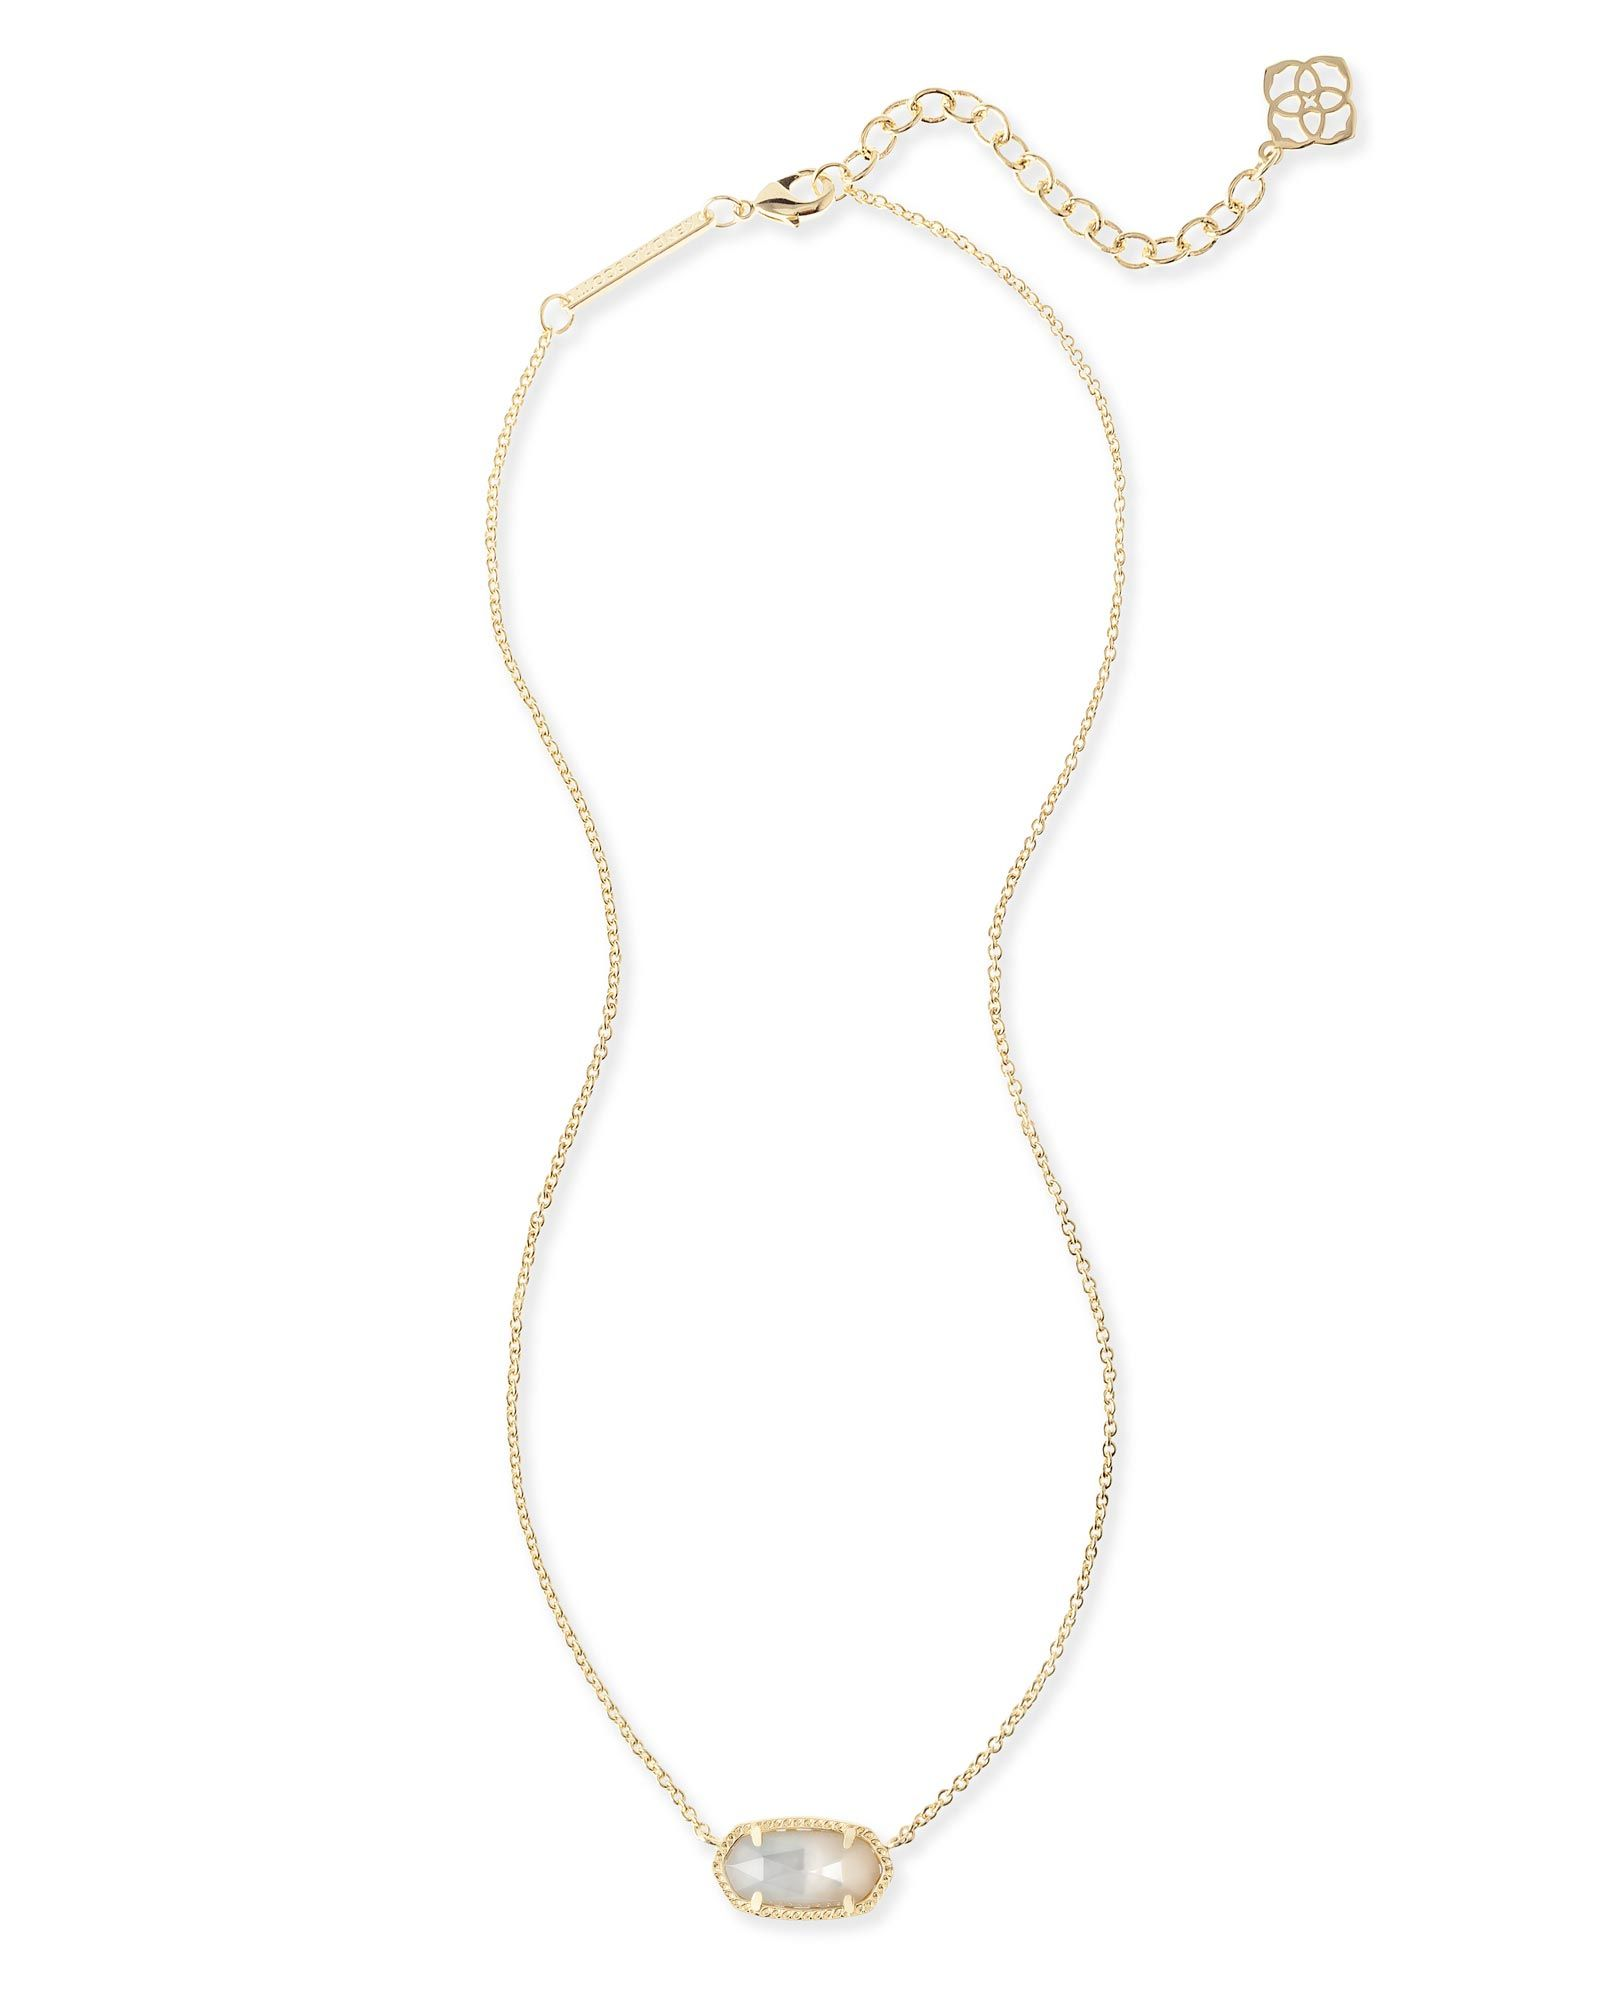 59d4971cc7a0d Elisa Pendant Necklace In Ivory Pearl - Kendra Scott Jewelry ...